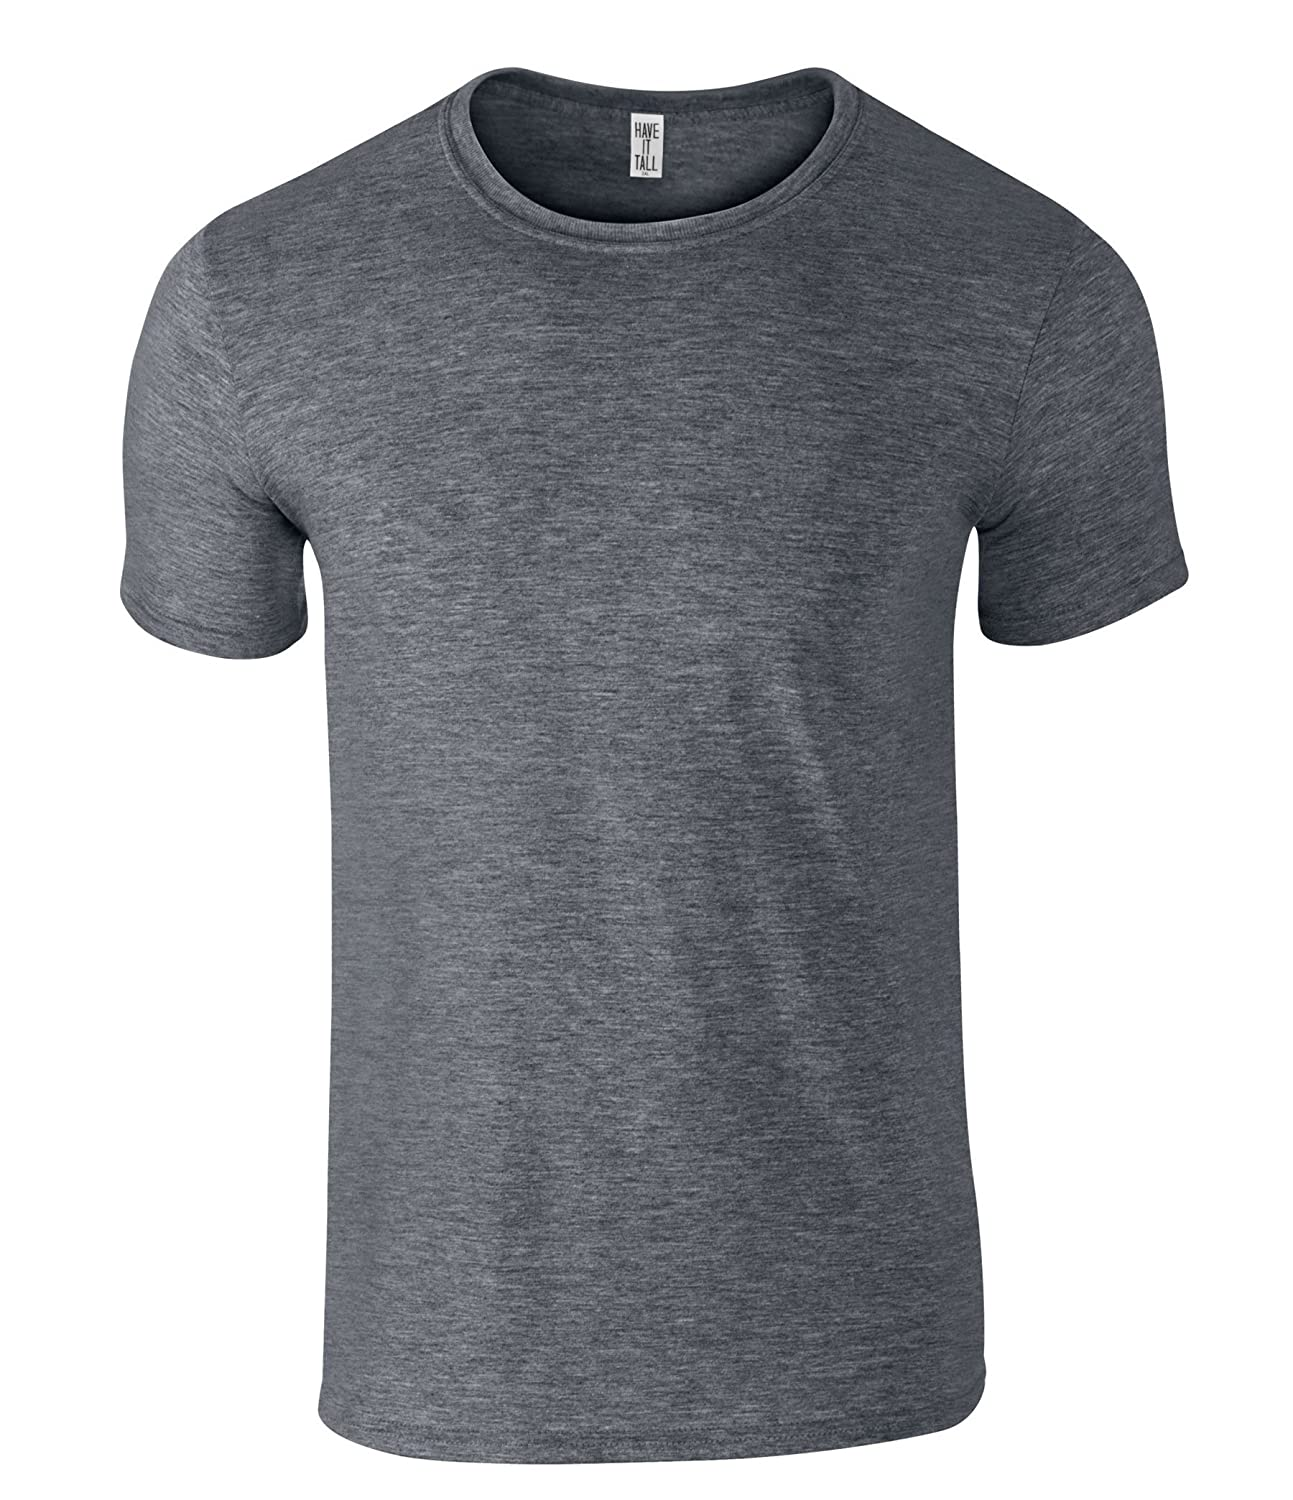 0ff976e95 Have It Tall Men's Tall T Shirt Soft Blend Fabric | Amazon.com